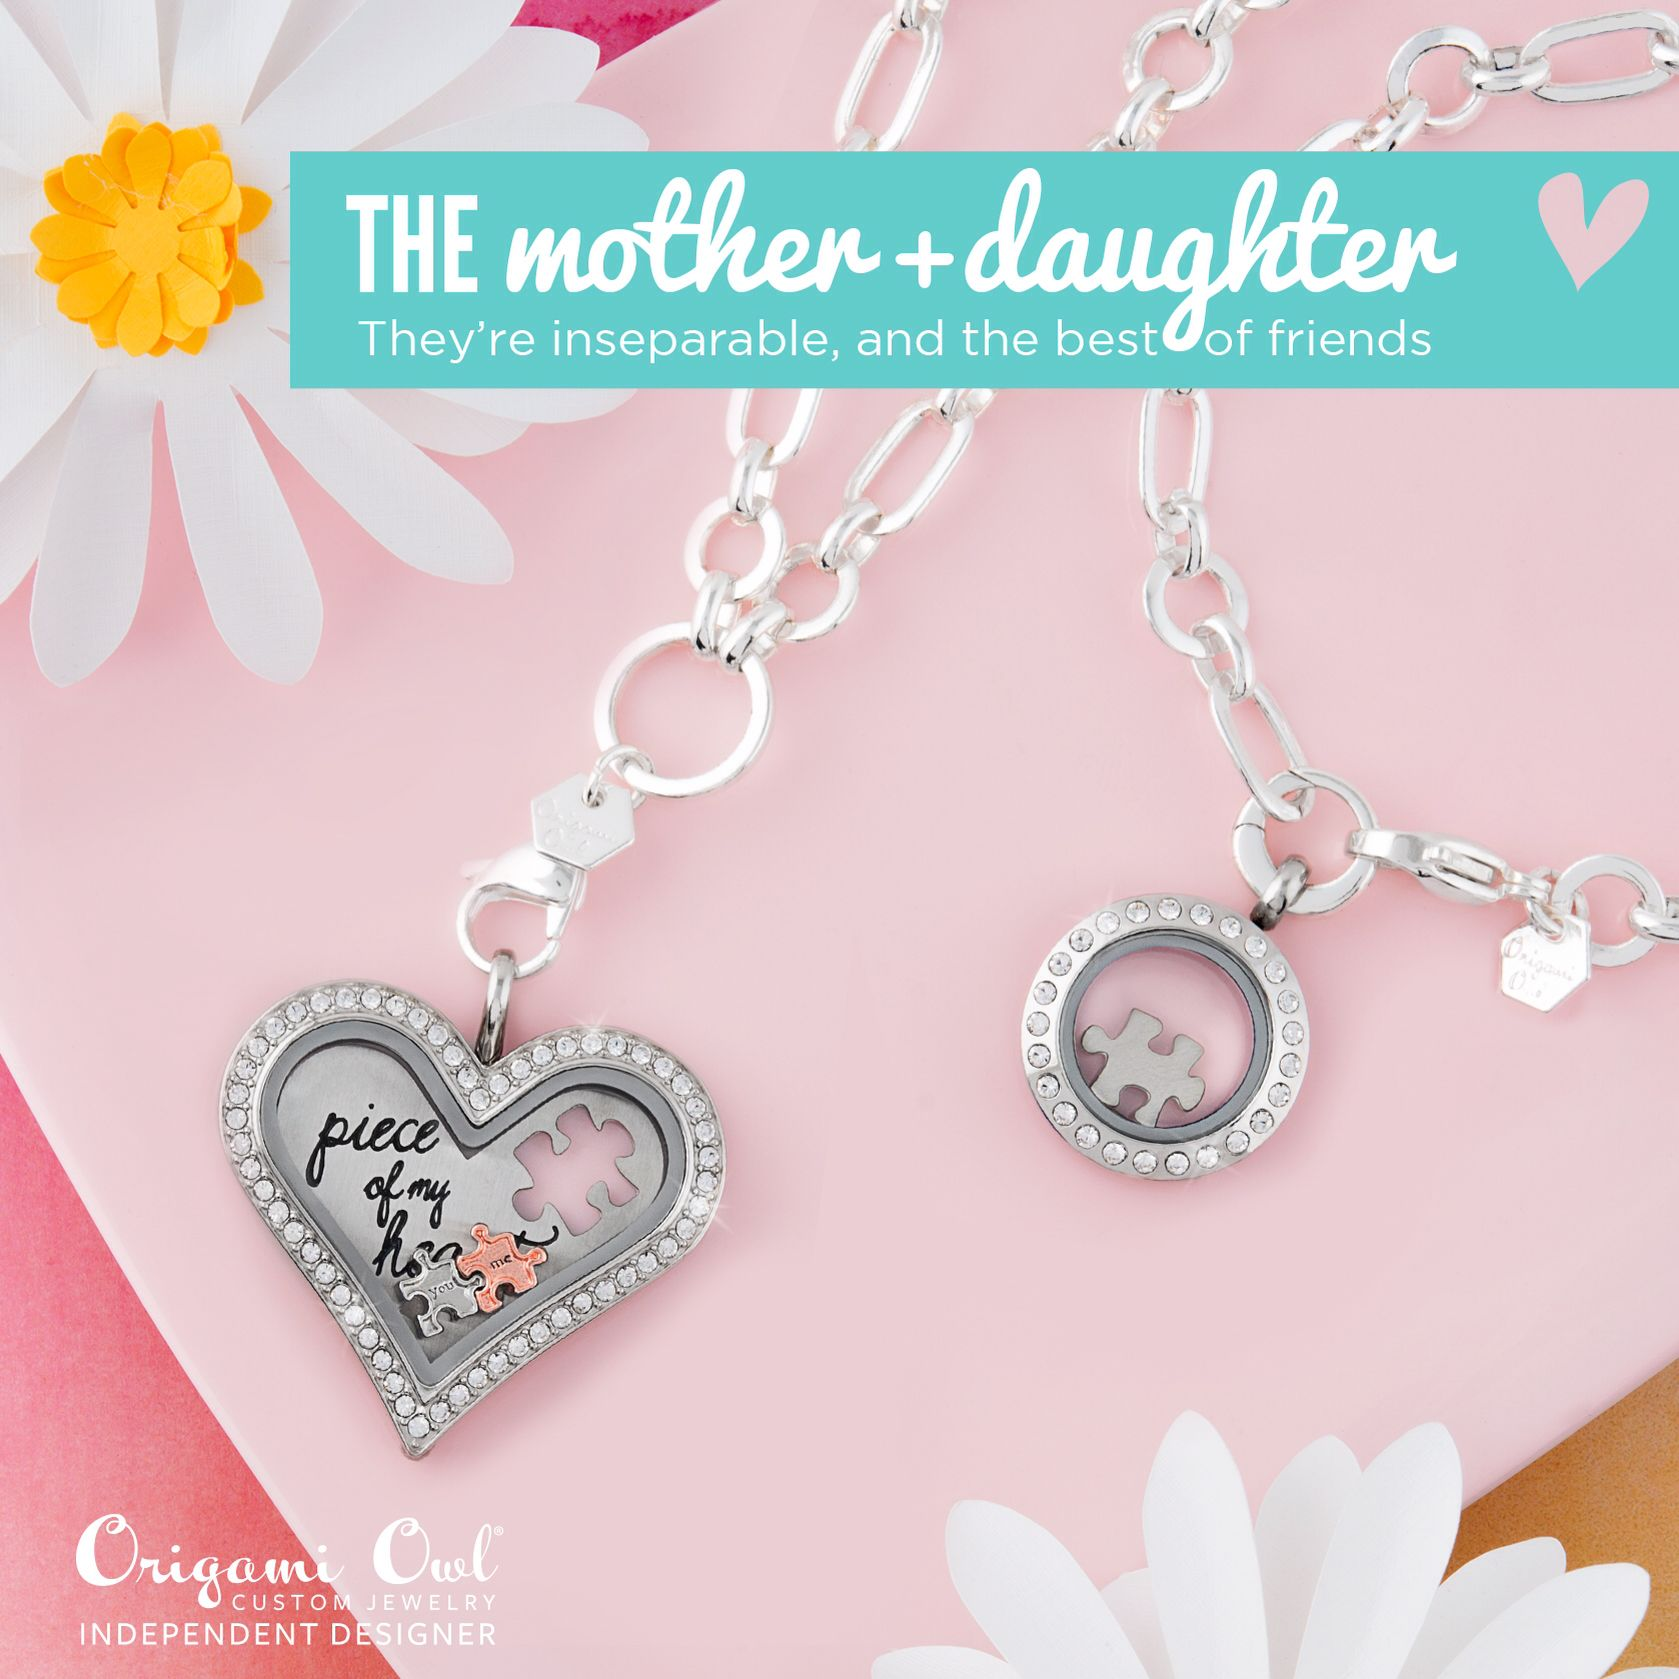 Pick a look to match her style... Do you have two special ladies in your life? #MotherDaughter #ValentinesDay #giftideas